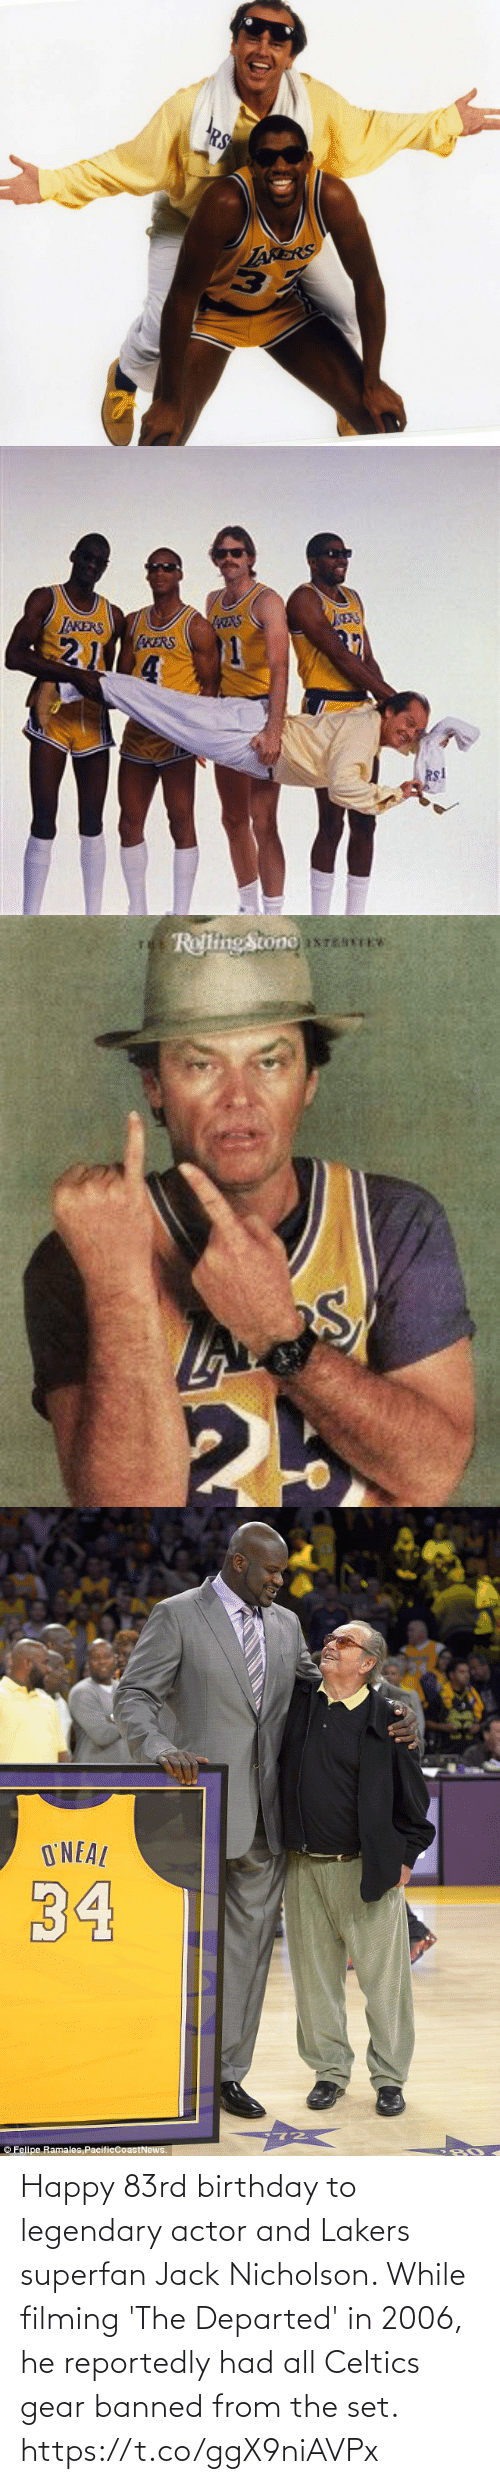 jack: Happy 83rd birthday to legendary actor and Lakers superfan Jack Nicholson.   While filming 'The Departed' in 2006, he reportedly had all Celtics gear banned from the set. https://t.co/ggX9niAVPx